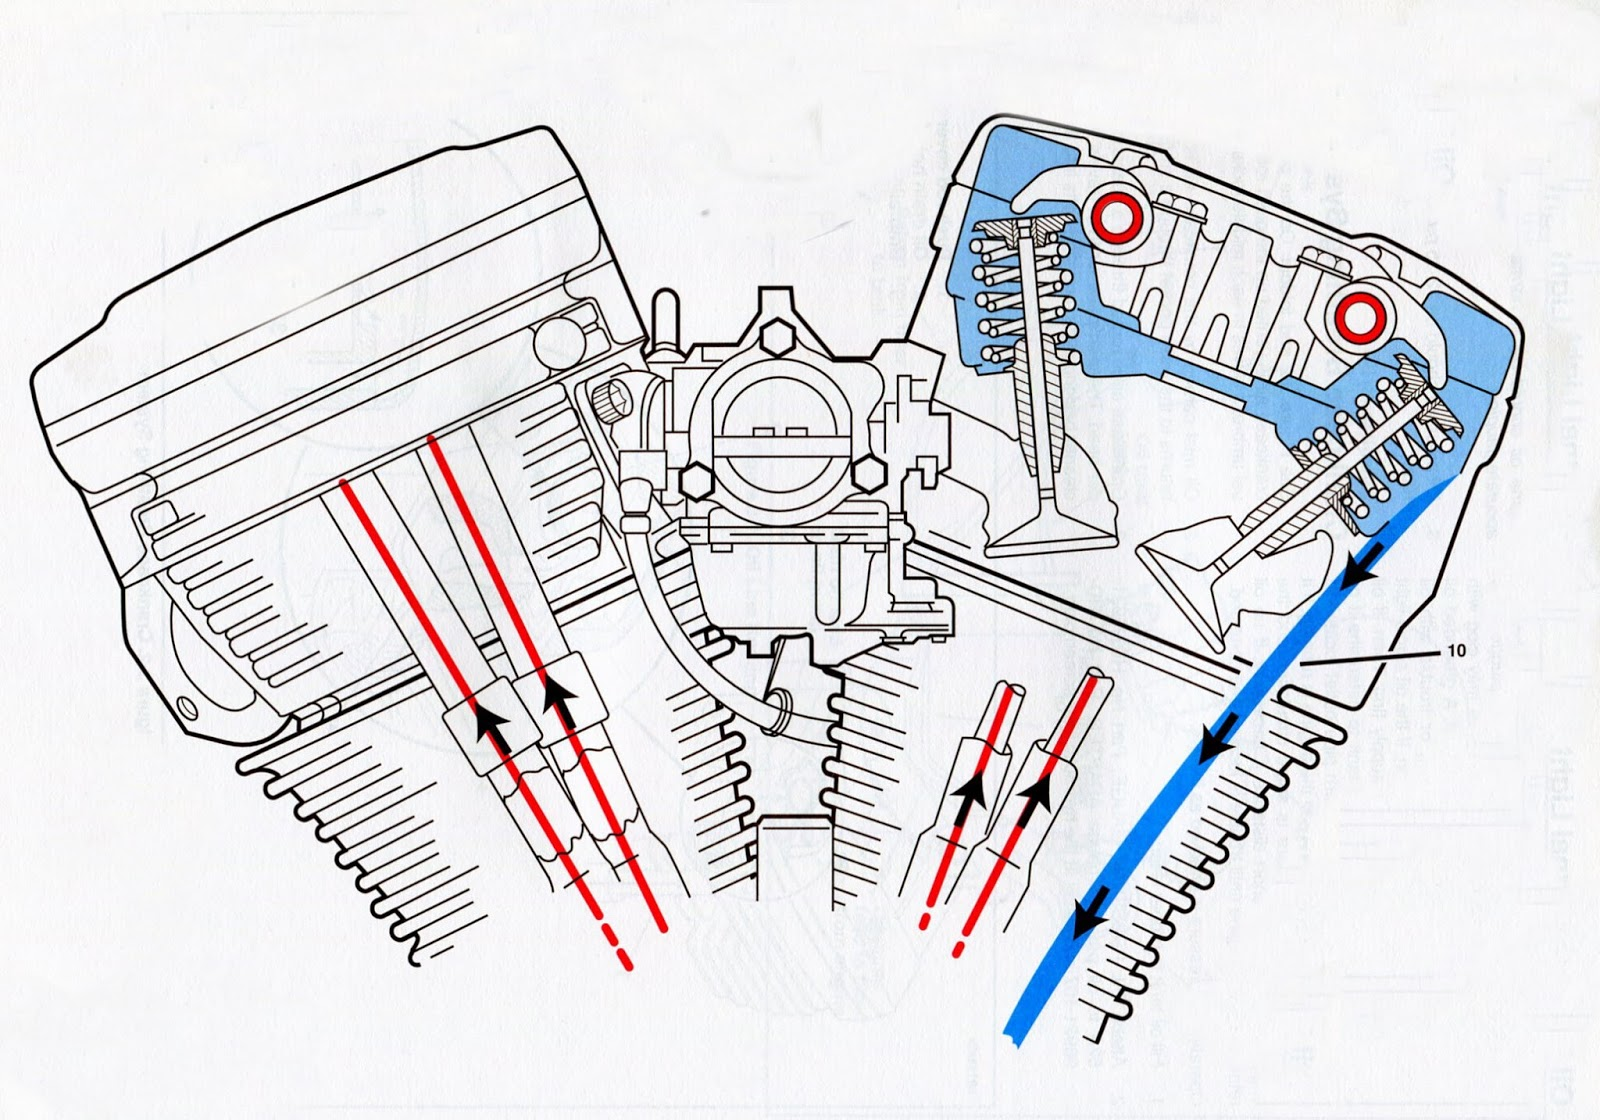 Harley Davidson Oil System Diagram - Wiring Diagram Online on pressure wiring diagram, 2000 jeep grand cherokee wiring diagram, transmission wiring diagram, chevy wiring diagram, sensor wiring diagram, distributor wiring diagram, 2002 jeep grand cherokee wiring diagram, a/c compressor wiring diagram, headlights wiring diagram, coil wiring diagram, power wiring diagram, water pump wiring diagram, motor wiring diagram, computer wiring diagram, fuel pump relay wiring diagram, battery wiring diagram, ignition wiring diagram, electrical wiring diagram, tps wiring diagram, starter wiring diagram,